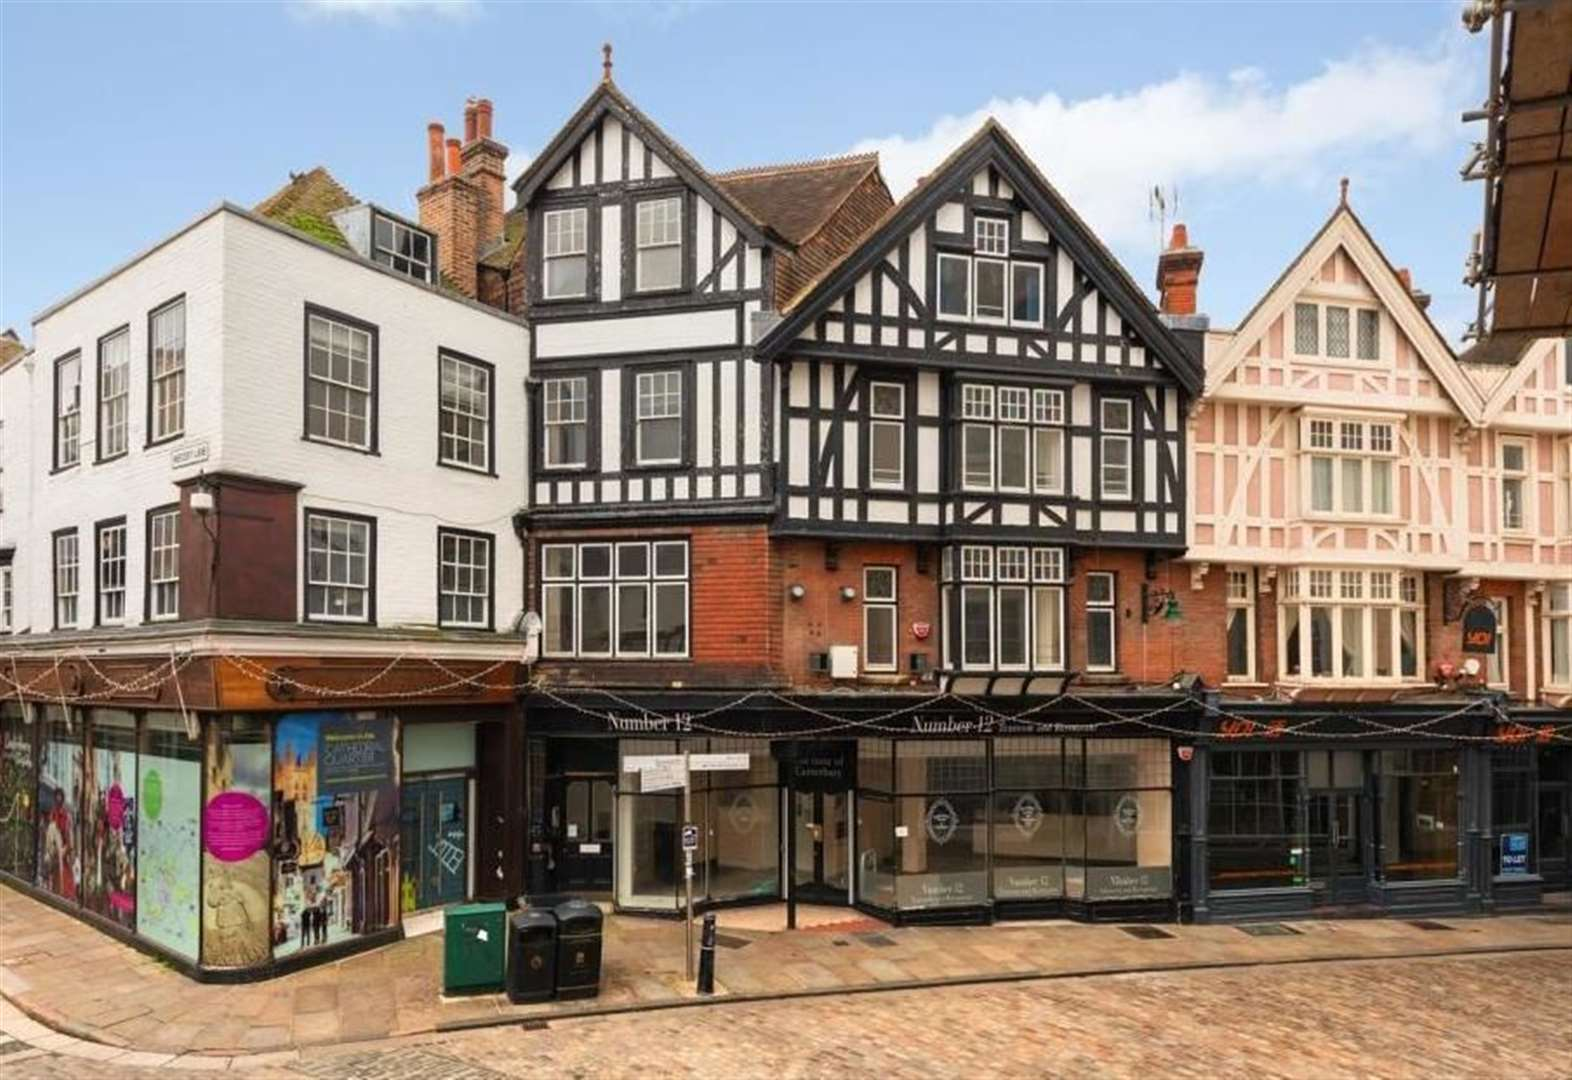 Building in shadow of famous Kent landmark on market for £1.25m